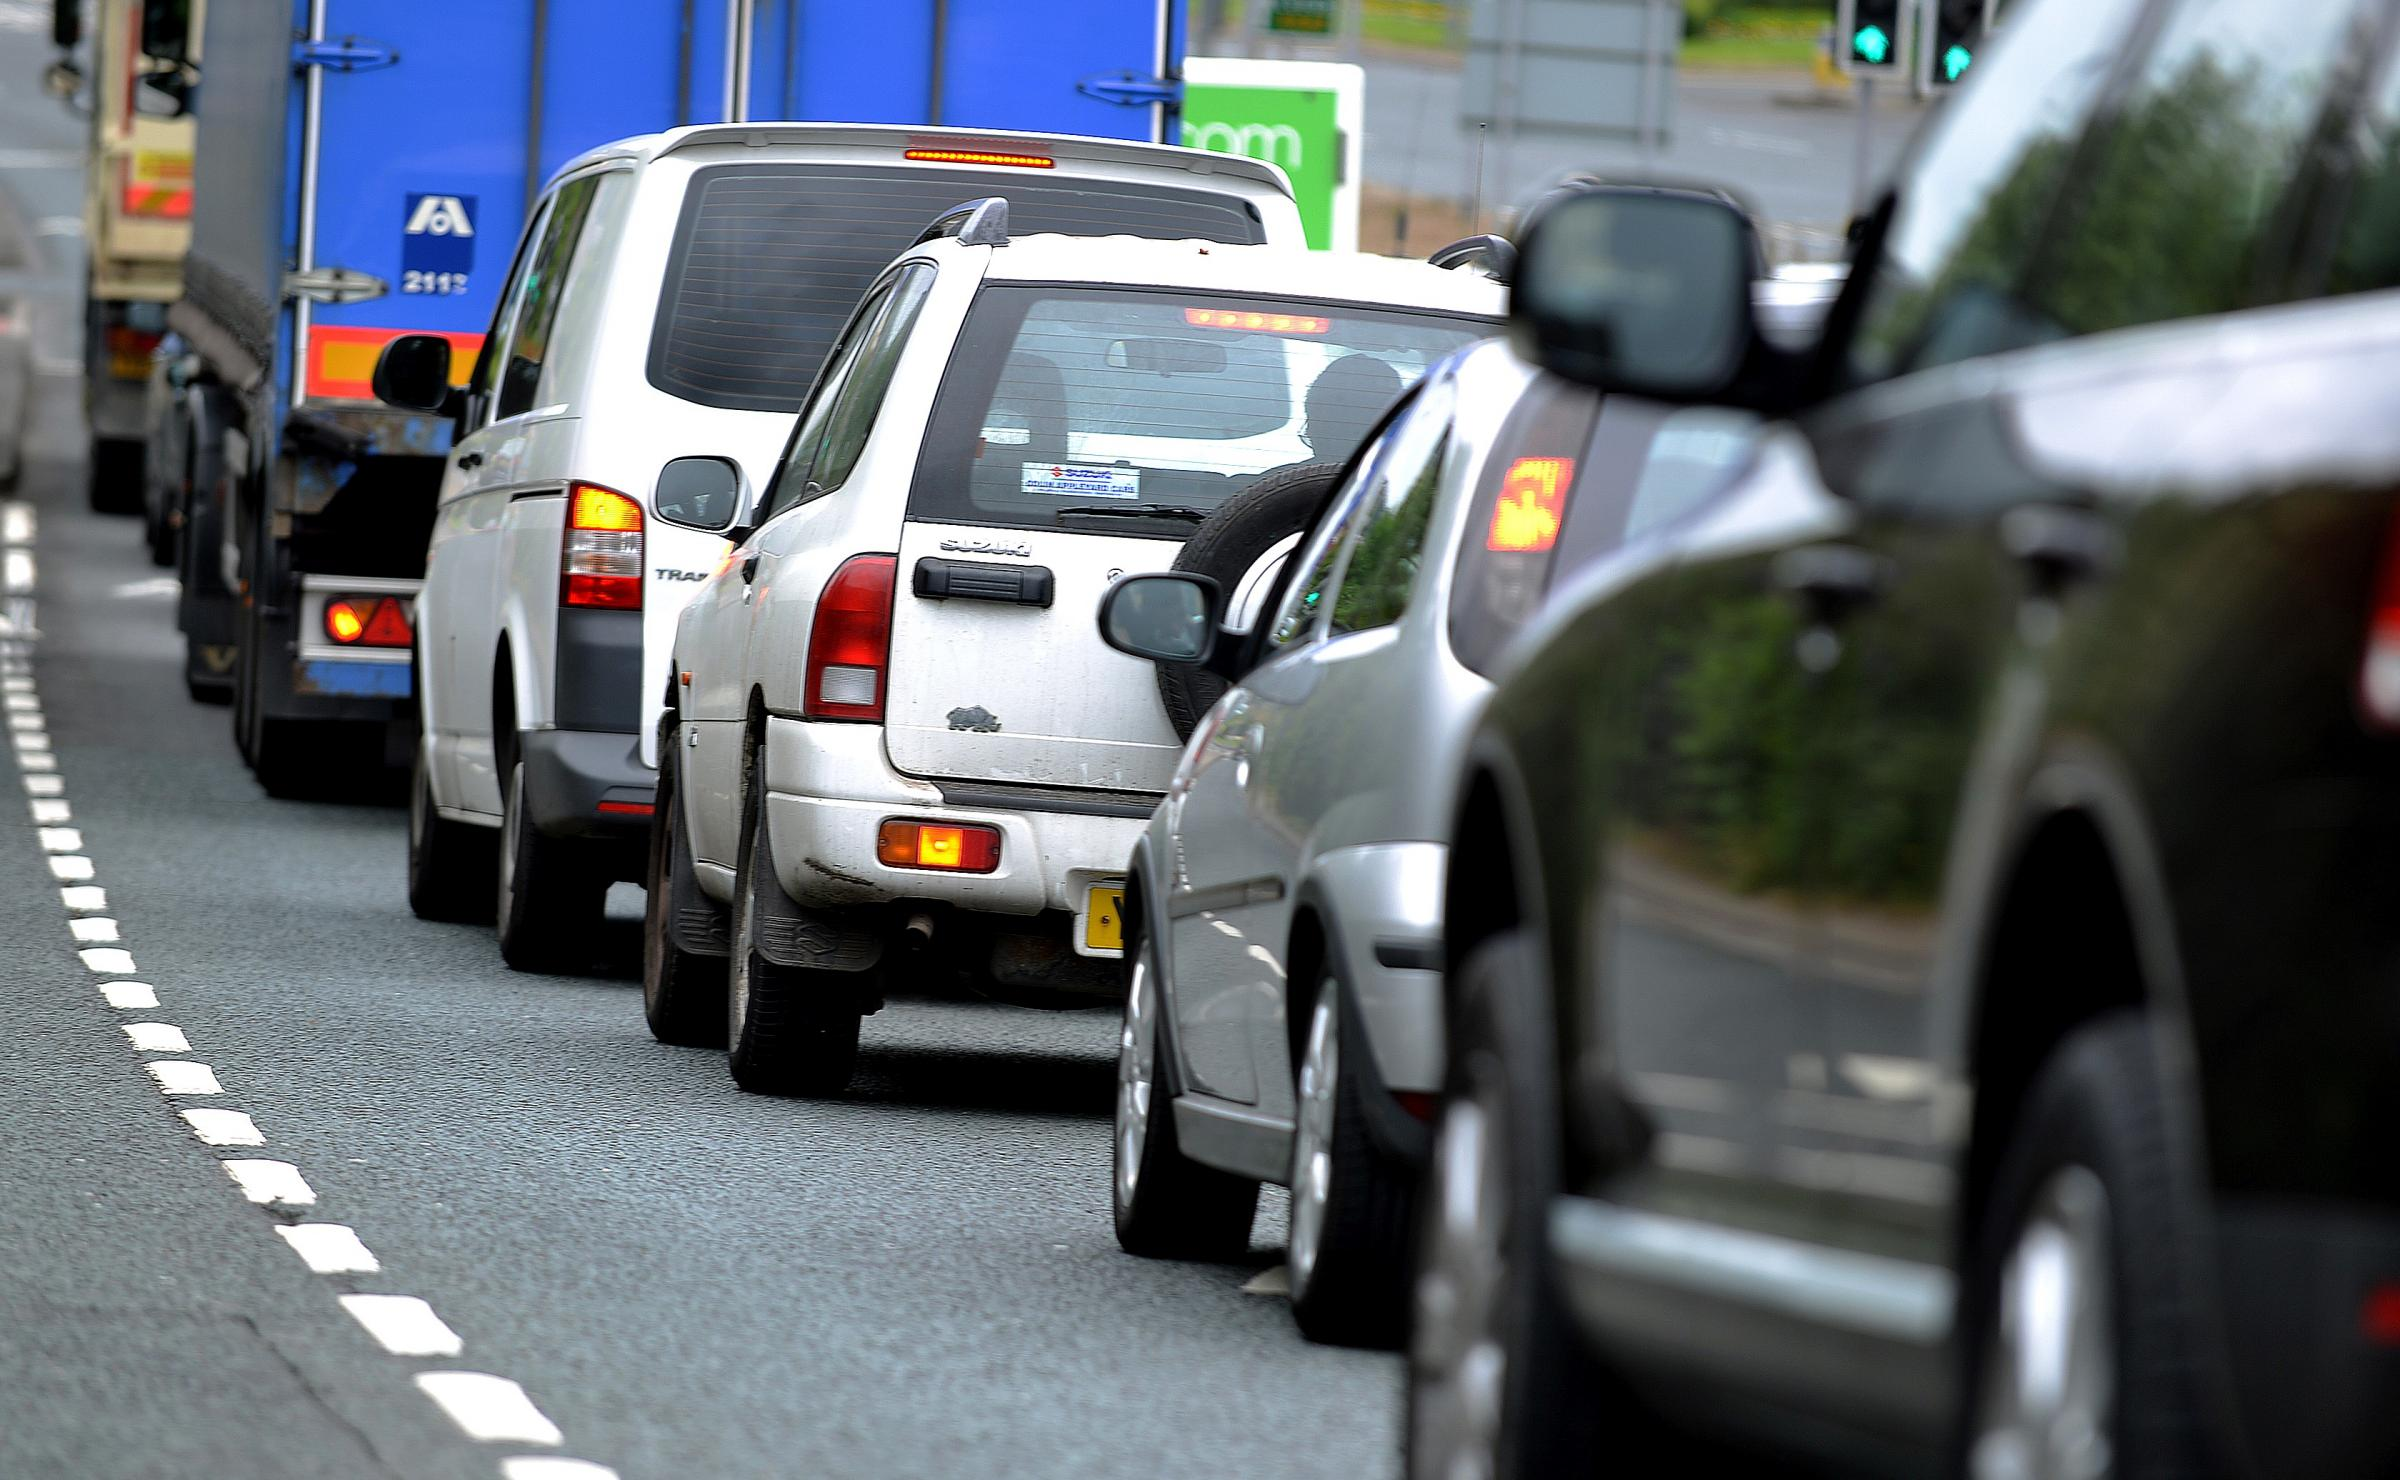 Delays on M62 after accident at Chain Bar